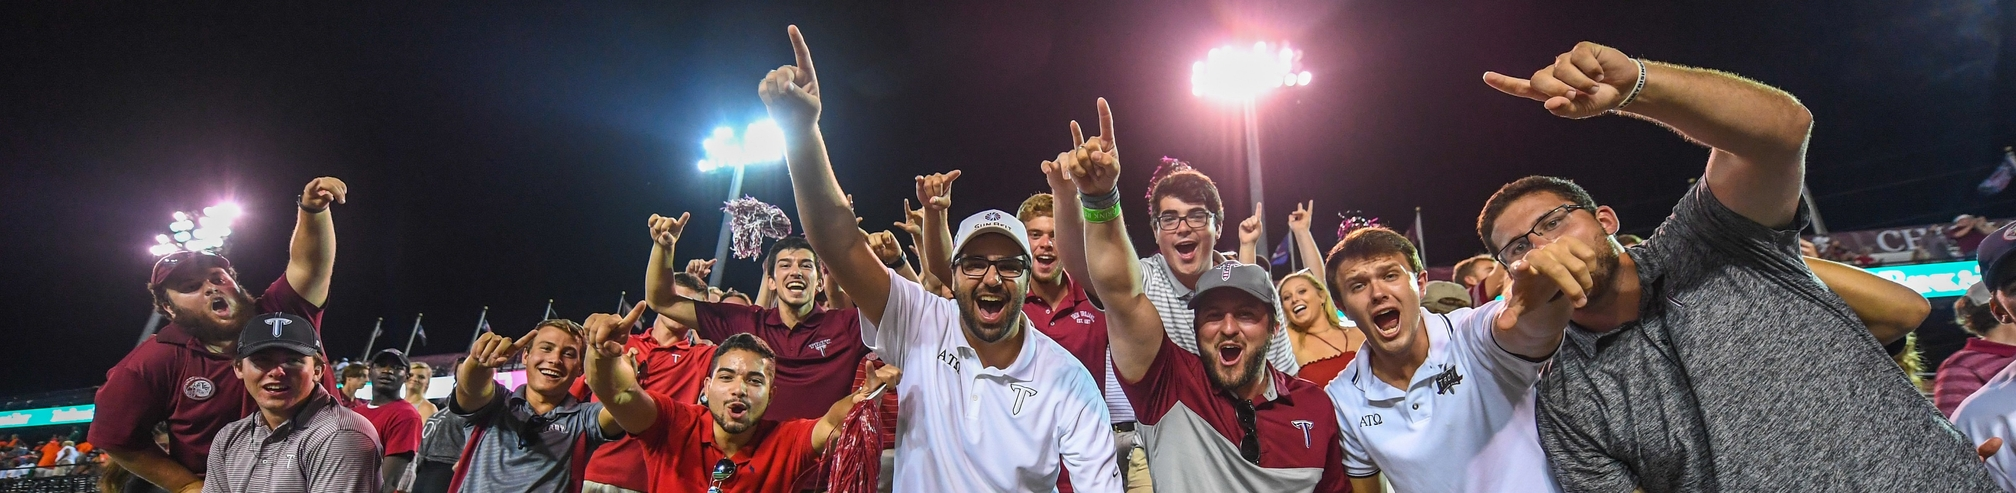 TROY fraternity brothers football fans